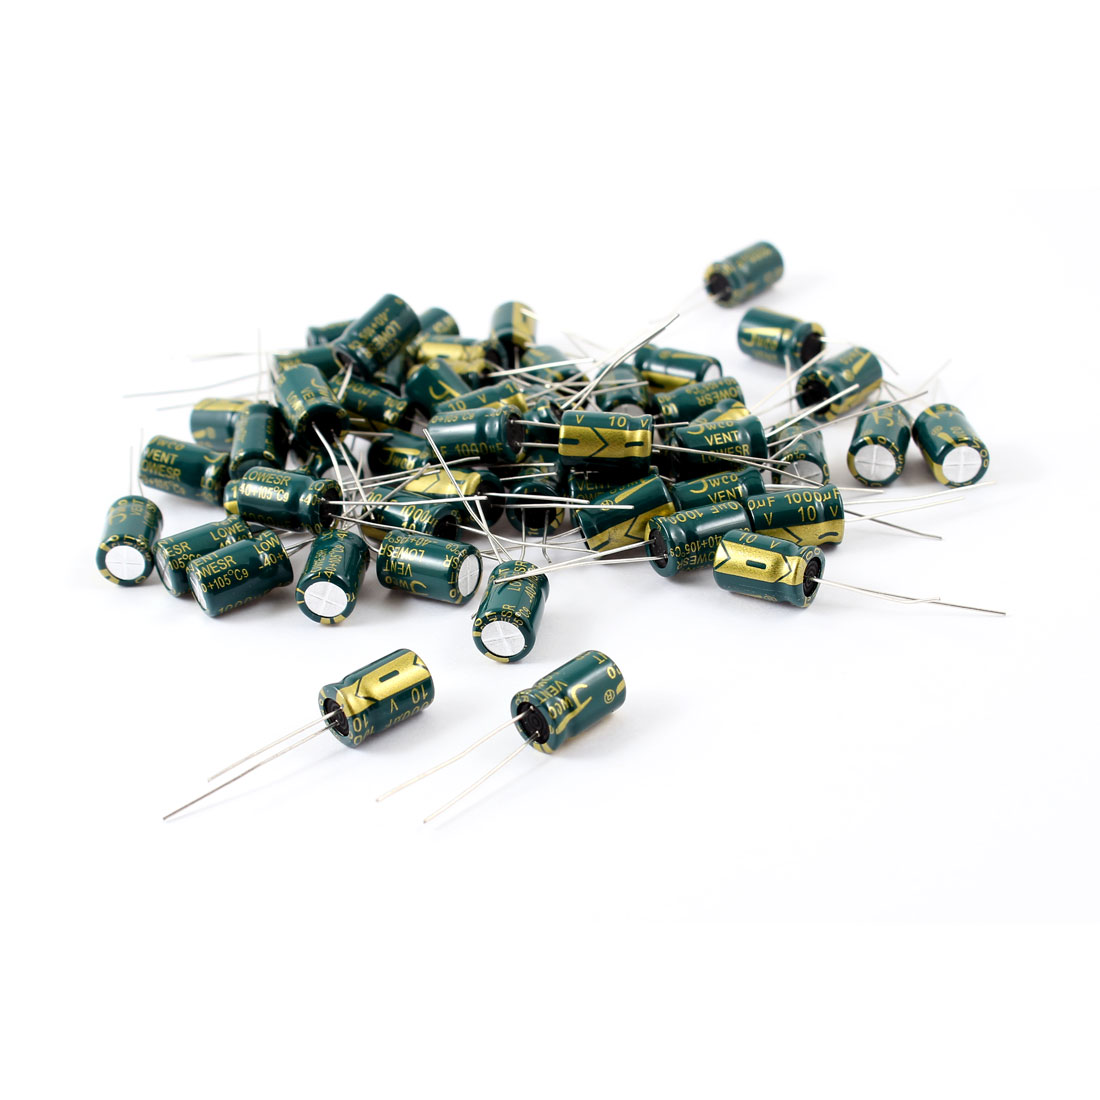 50 Pcs 1000uF 10V Radial Aluminnum Electrolytic Capacitors 8mm x 12mm